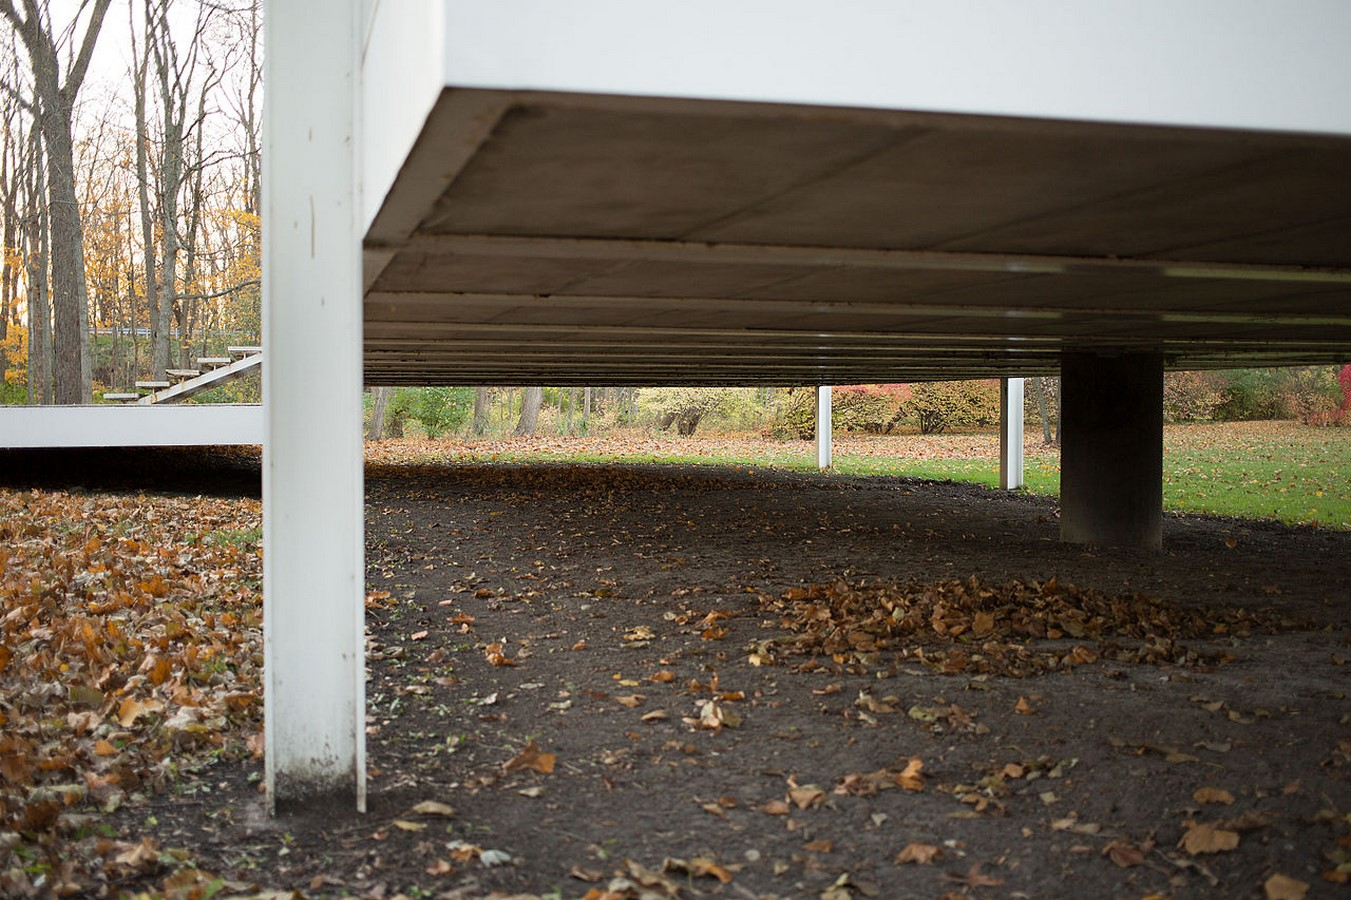 Farnsworth House by Mies van der Rohe: A bond between the House and Nature - Sheet8